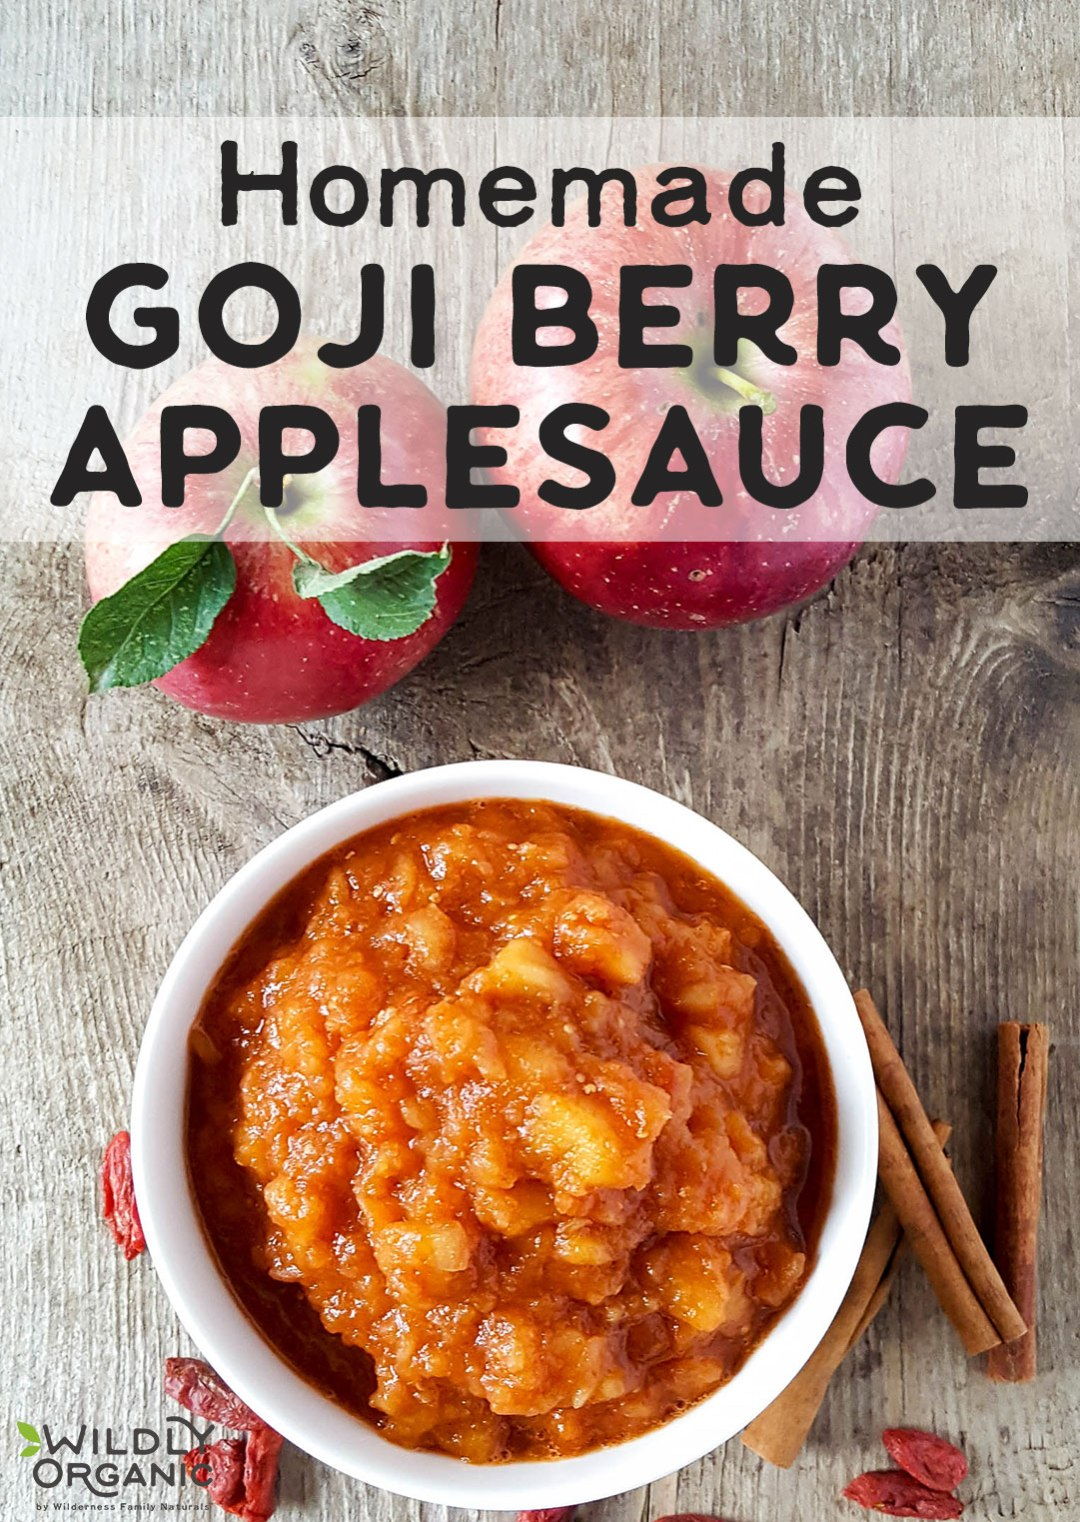 Homemade Goji Berry Applesauce | Whether picky ones don't care for goji berries, or you're simply wanting to add some superfood power to this Fall's apple harvest, try this easy Homemade Goji Berry Applesauce. Using an electric pressure cooker (like the Instant Pot) saves so much time! | WildlyOrganic.com